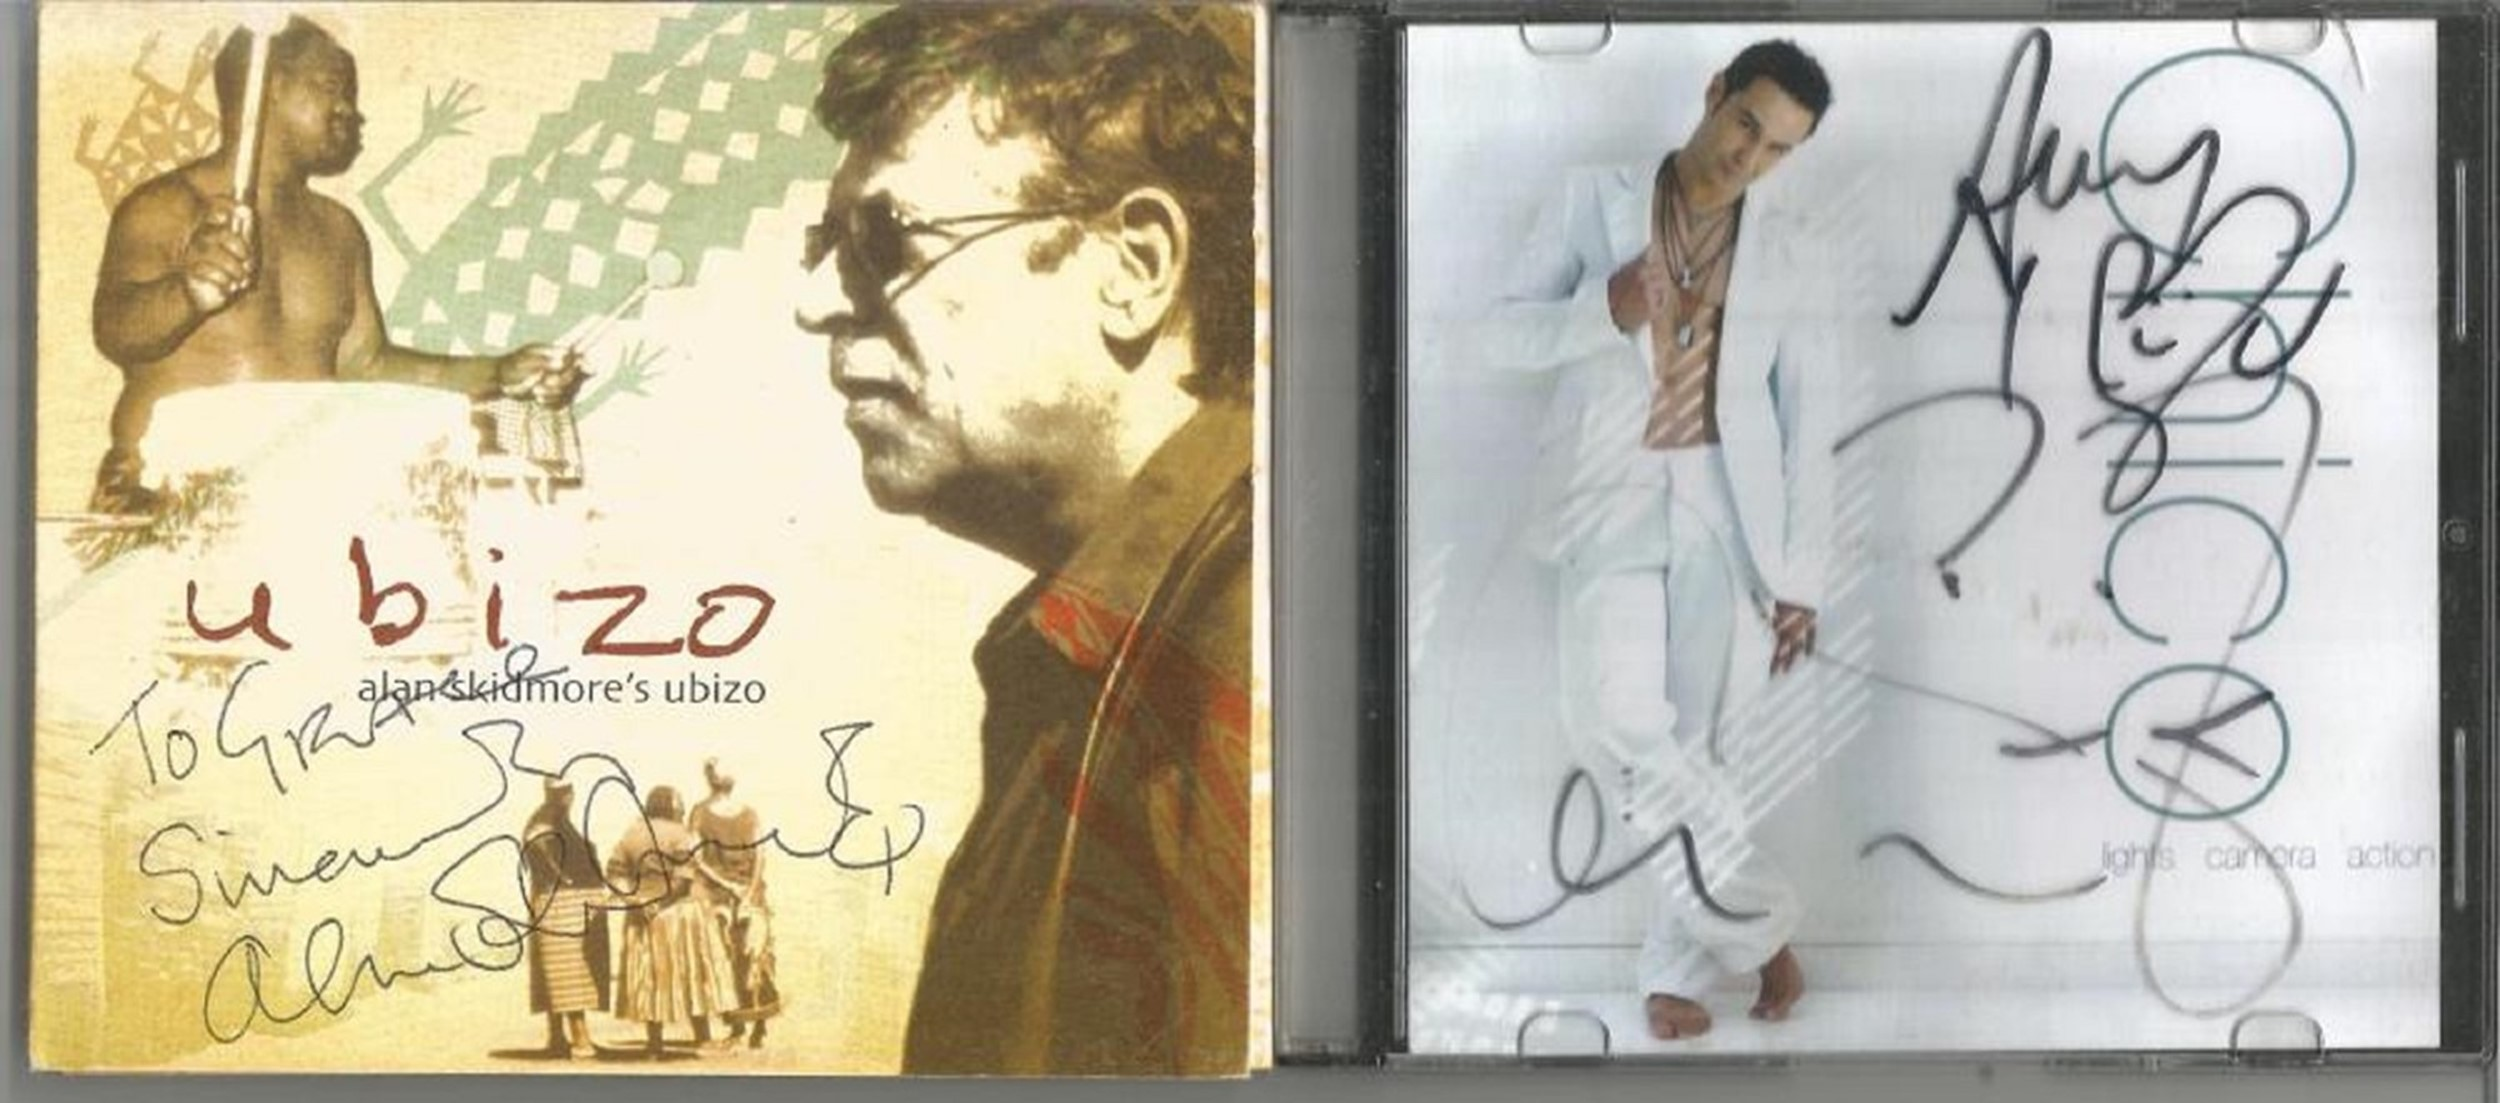 6 Signed CDs Including Belle Canto Whisper of Angels Disc Included, Pissboy Dream City Film Club